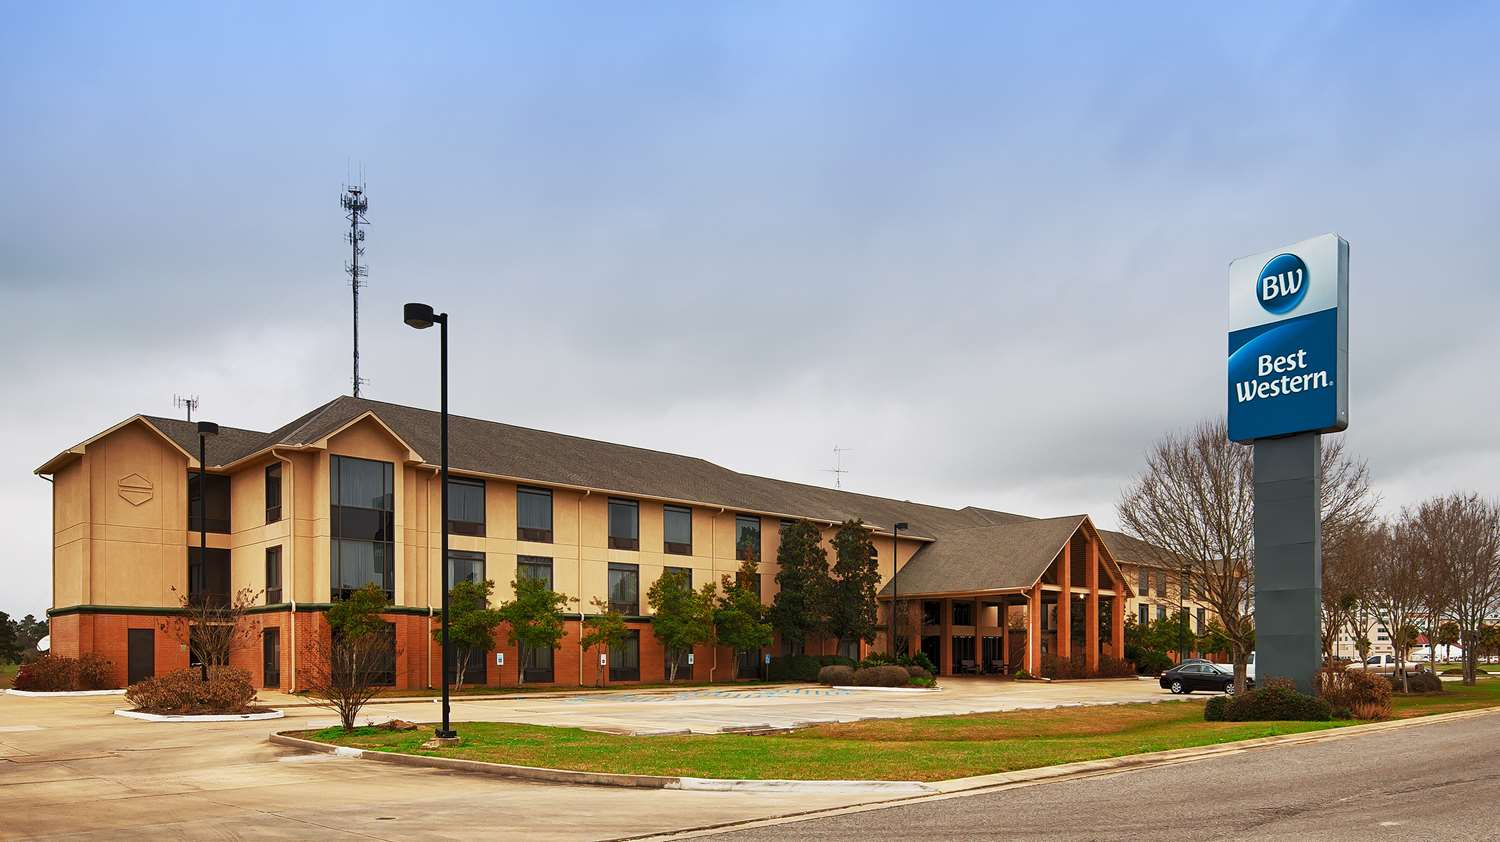 Exterior view - Best Western Inn at Coushatta Kinder